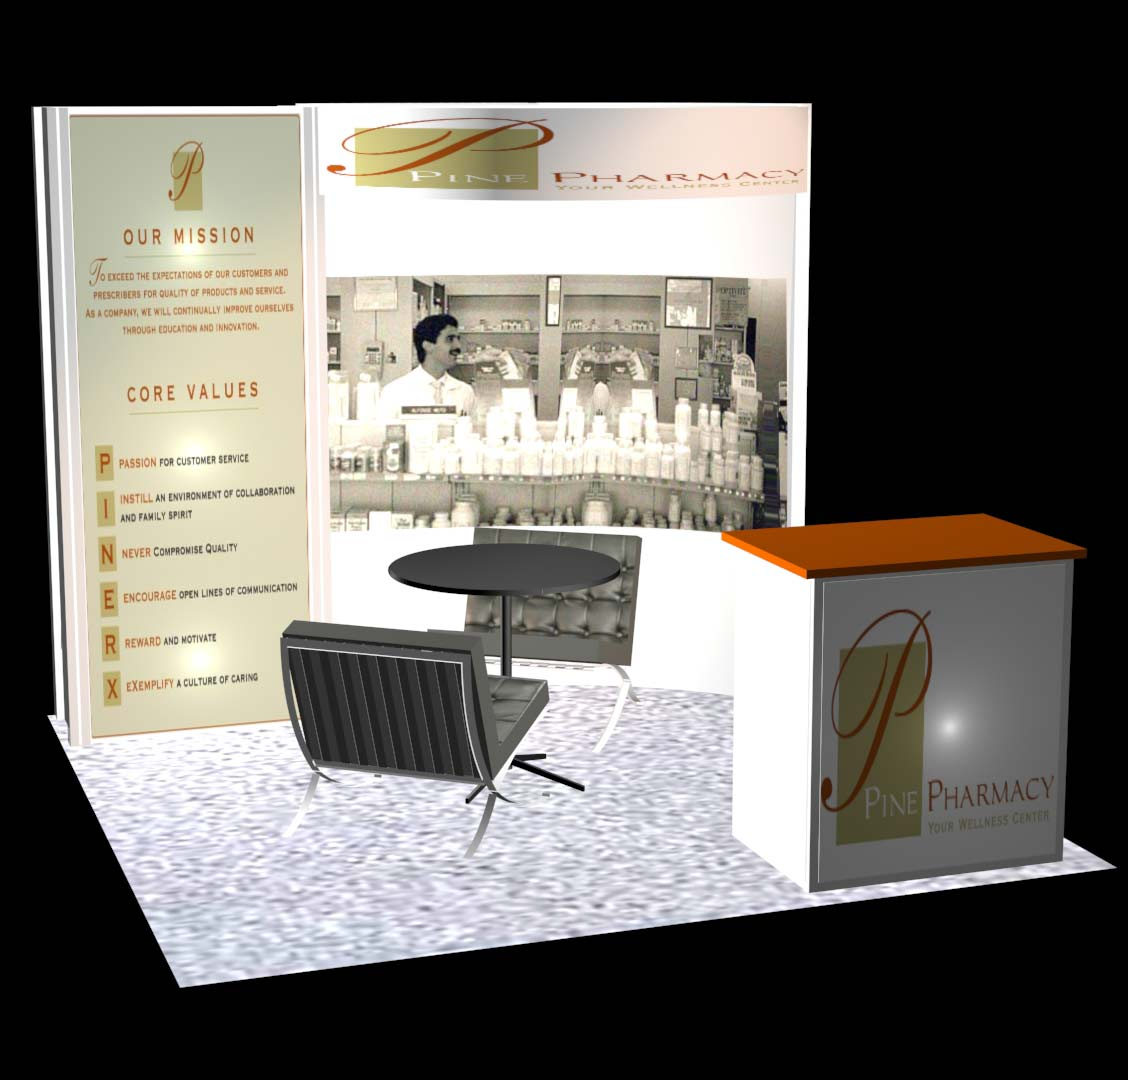 pine pharmacy 10x10 trade show booth booth design ideas